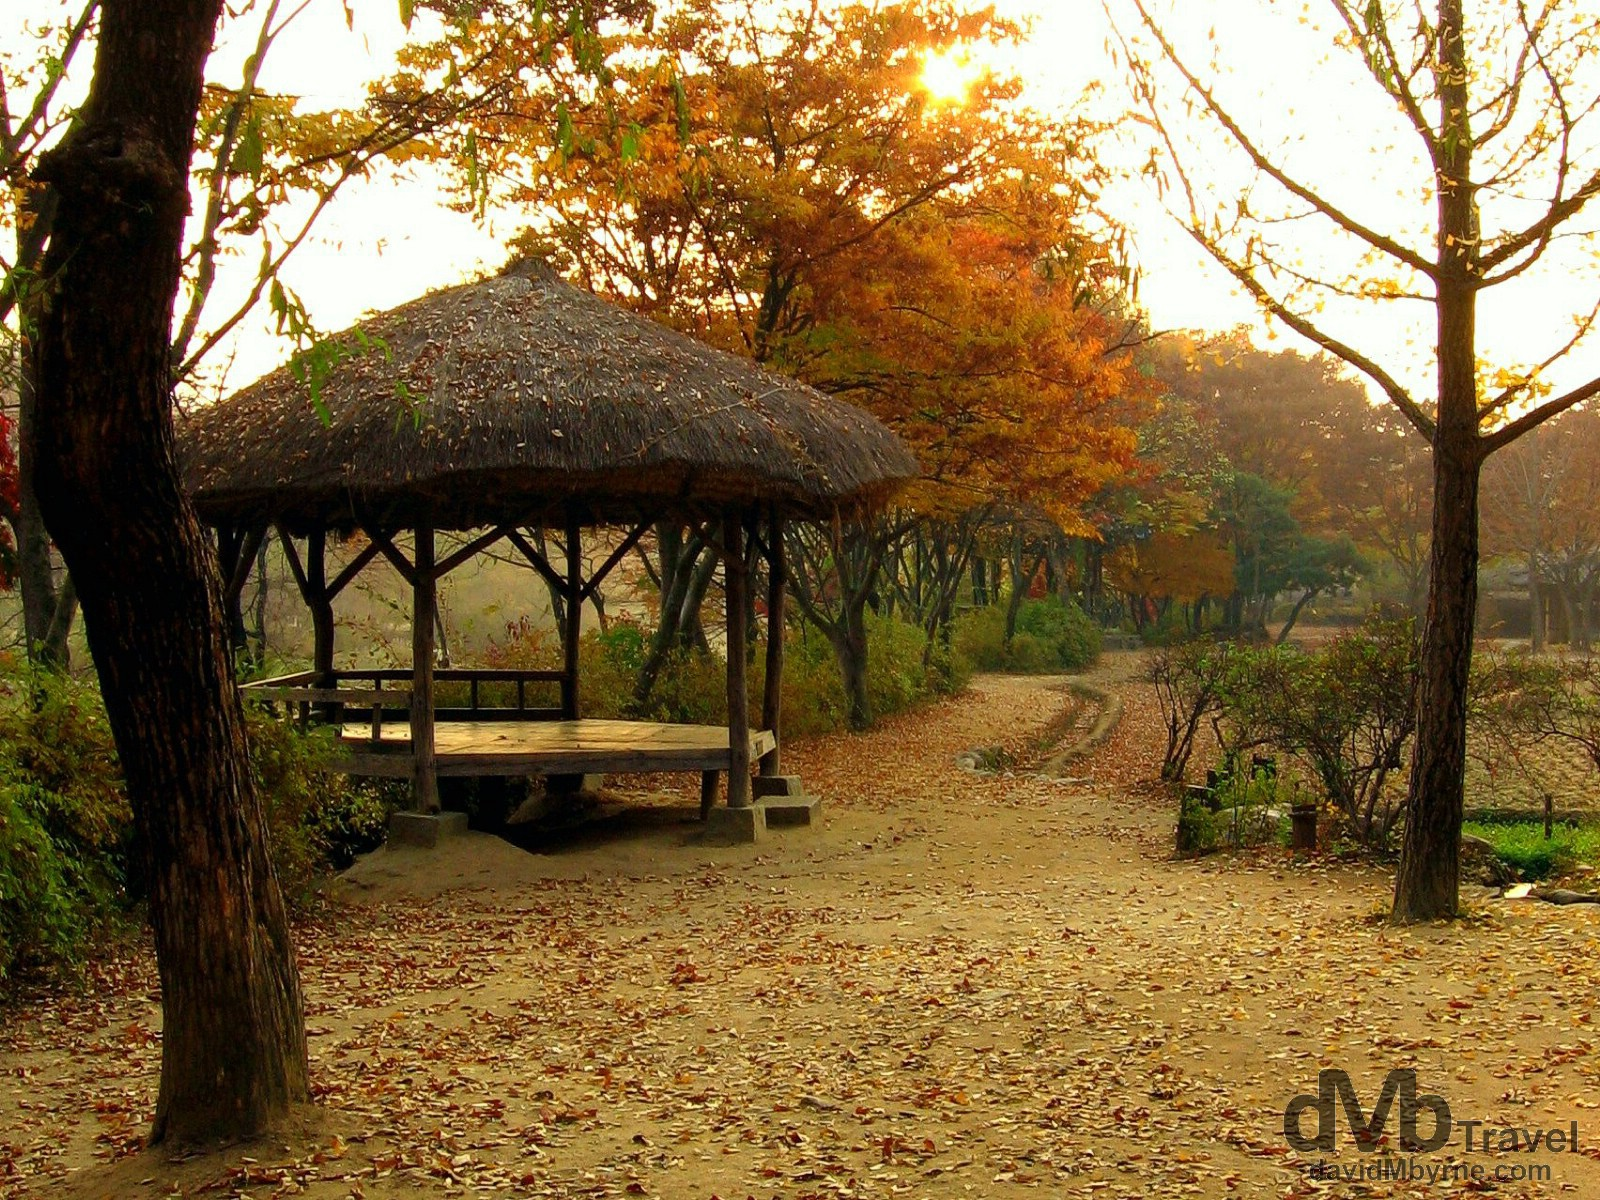 Autumnal scenes at the Folk Village in Yongin, South Korea. November 7th, 2007.